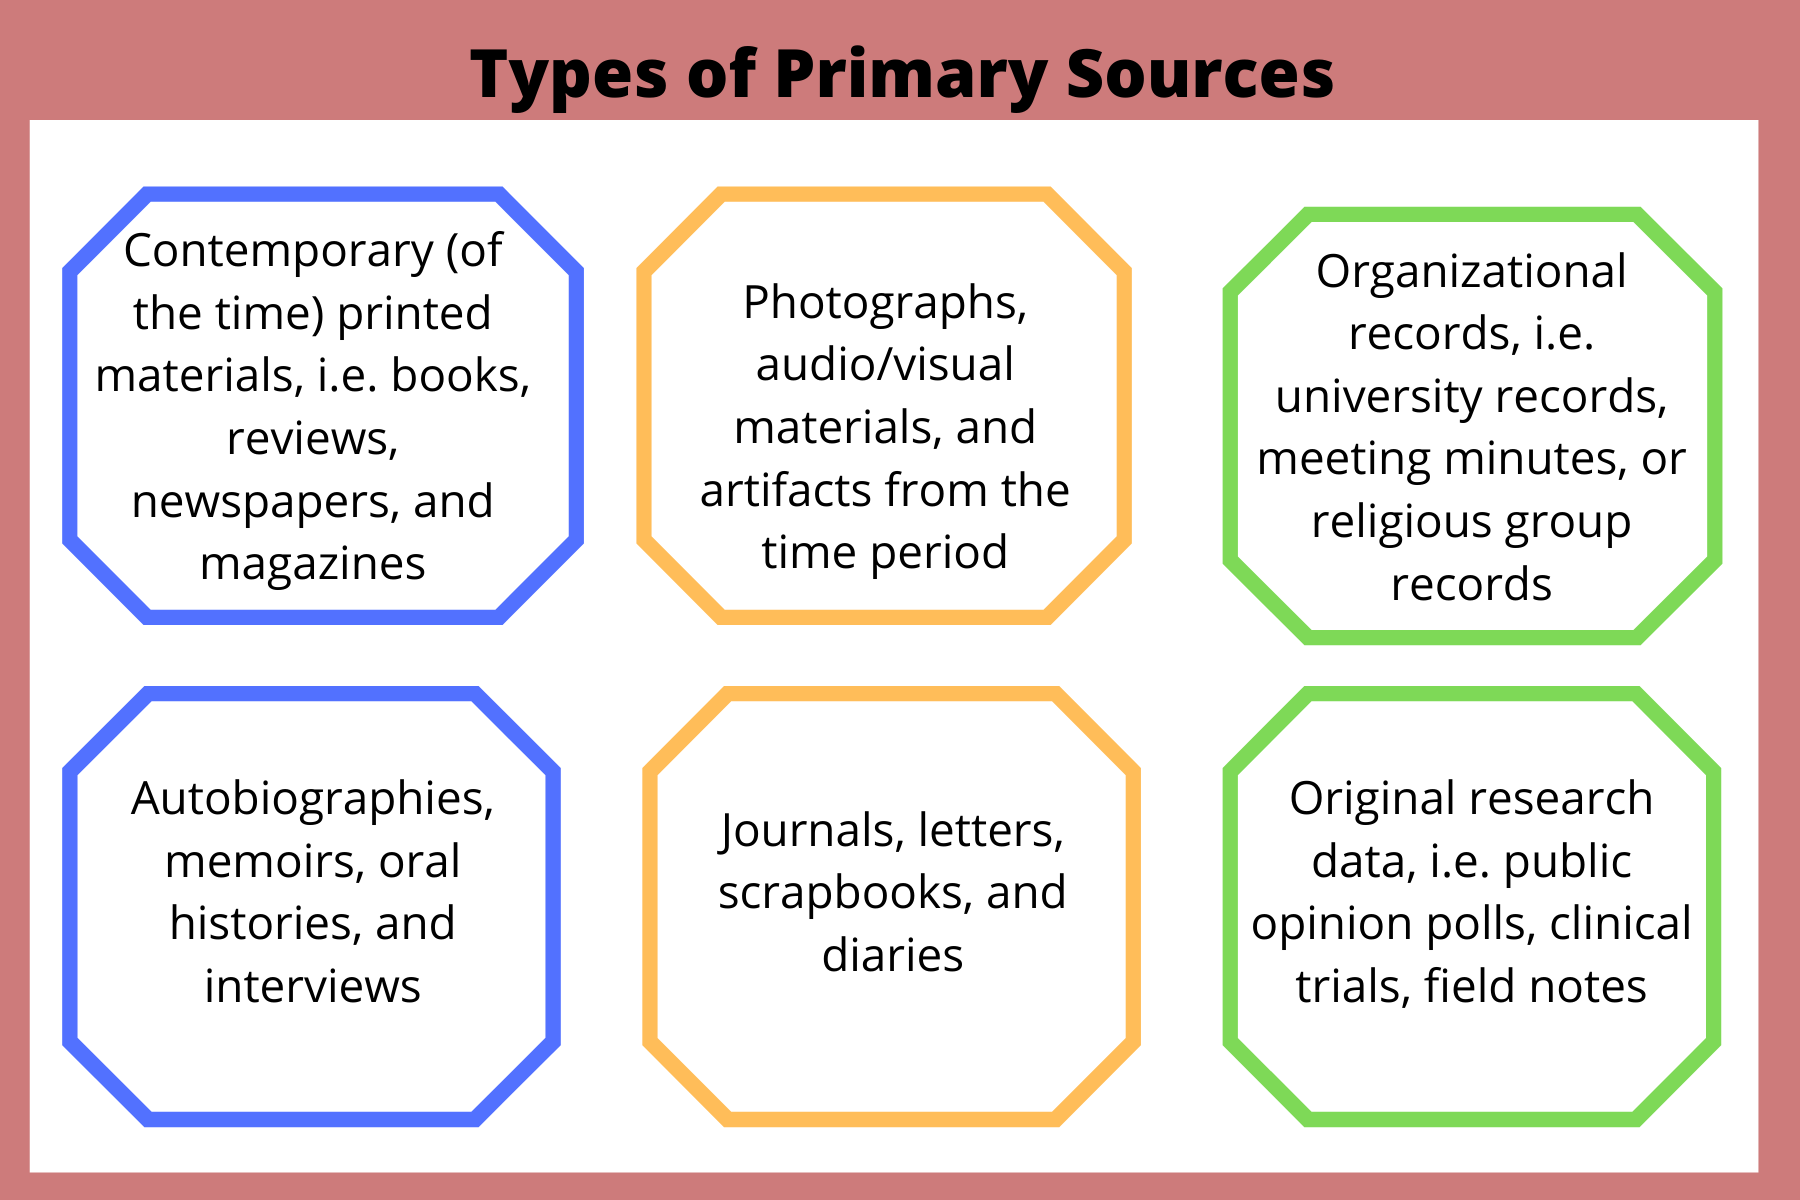 Types of primary sources: contemporary (of the time) printed materials, photographs, a/v materials, organizational records, autobiographies, memoirs, oral histories, and interviews, journals, letters, scrapbooks, diaries, and original research data.